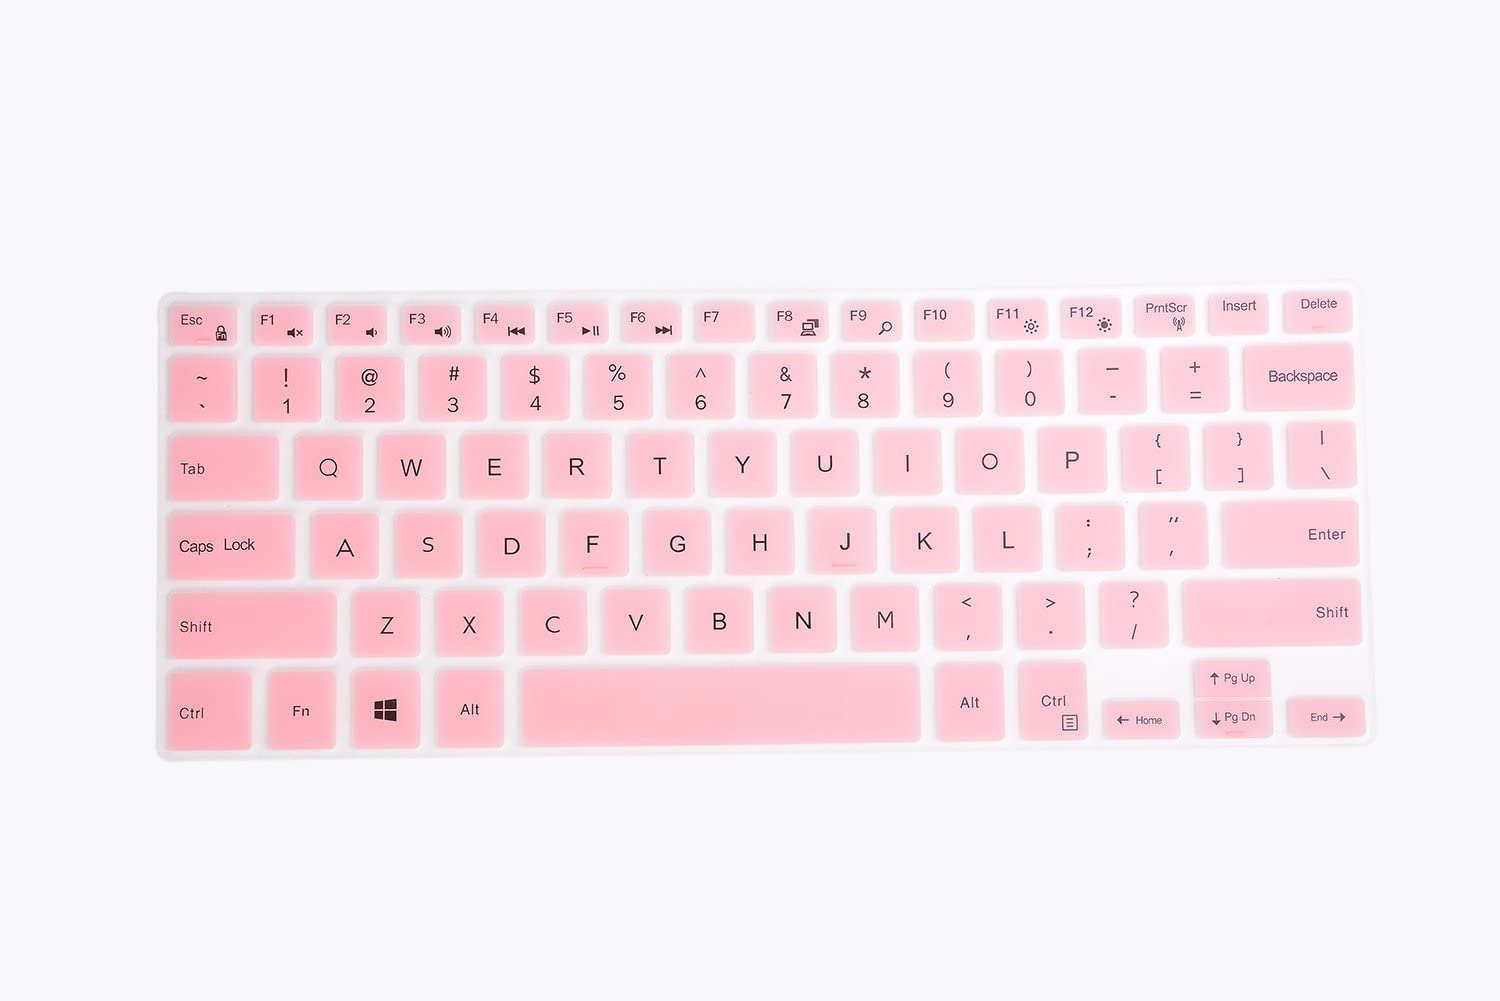 Keyboard Cover for Dell Inspiron 13 5368 5370 5378 5379 7368 7386, Inspiron 15 5568 5578 5579 5580 5585 5591 7569 7580 7586 Laptop - Pink